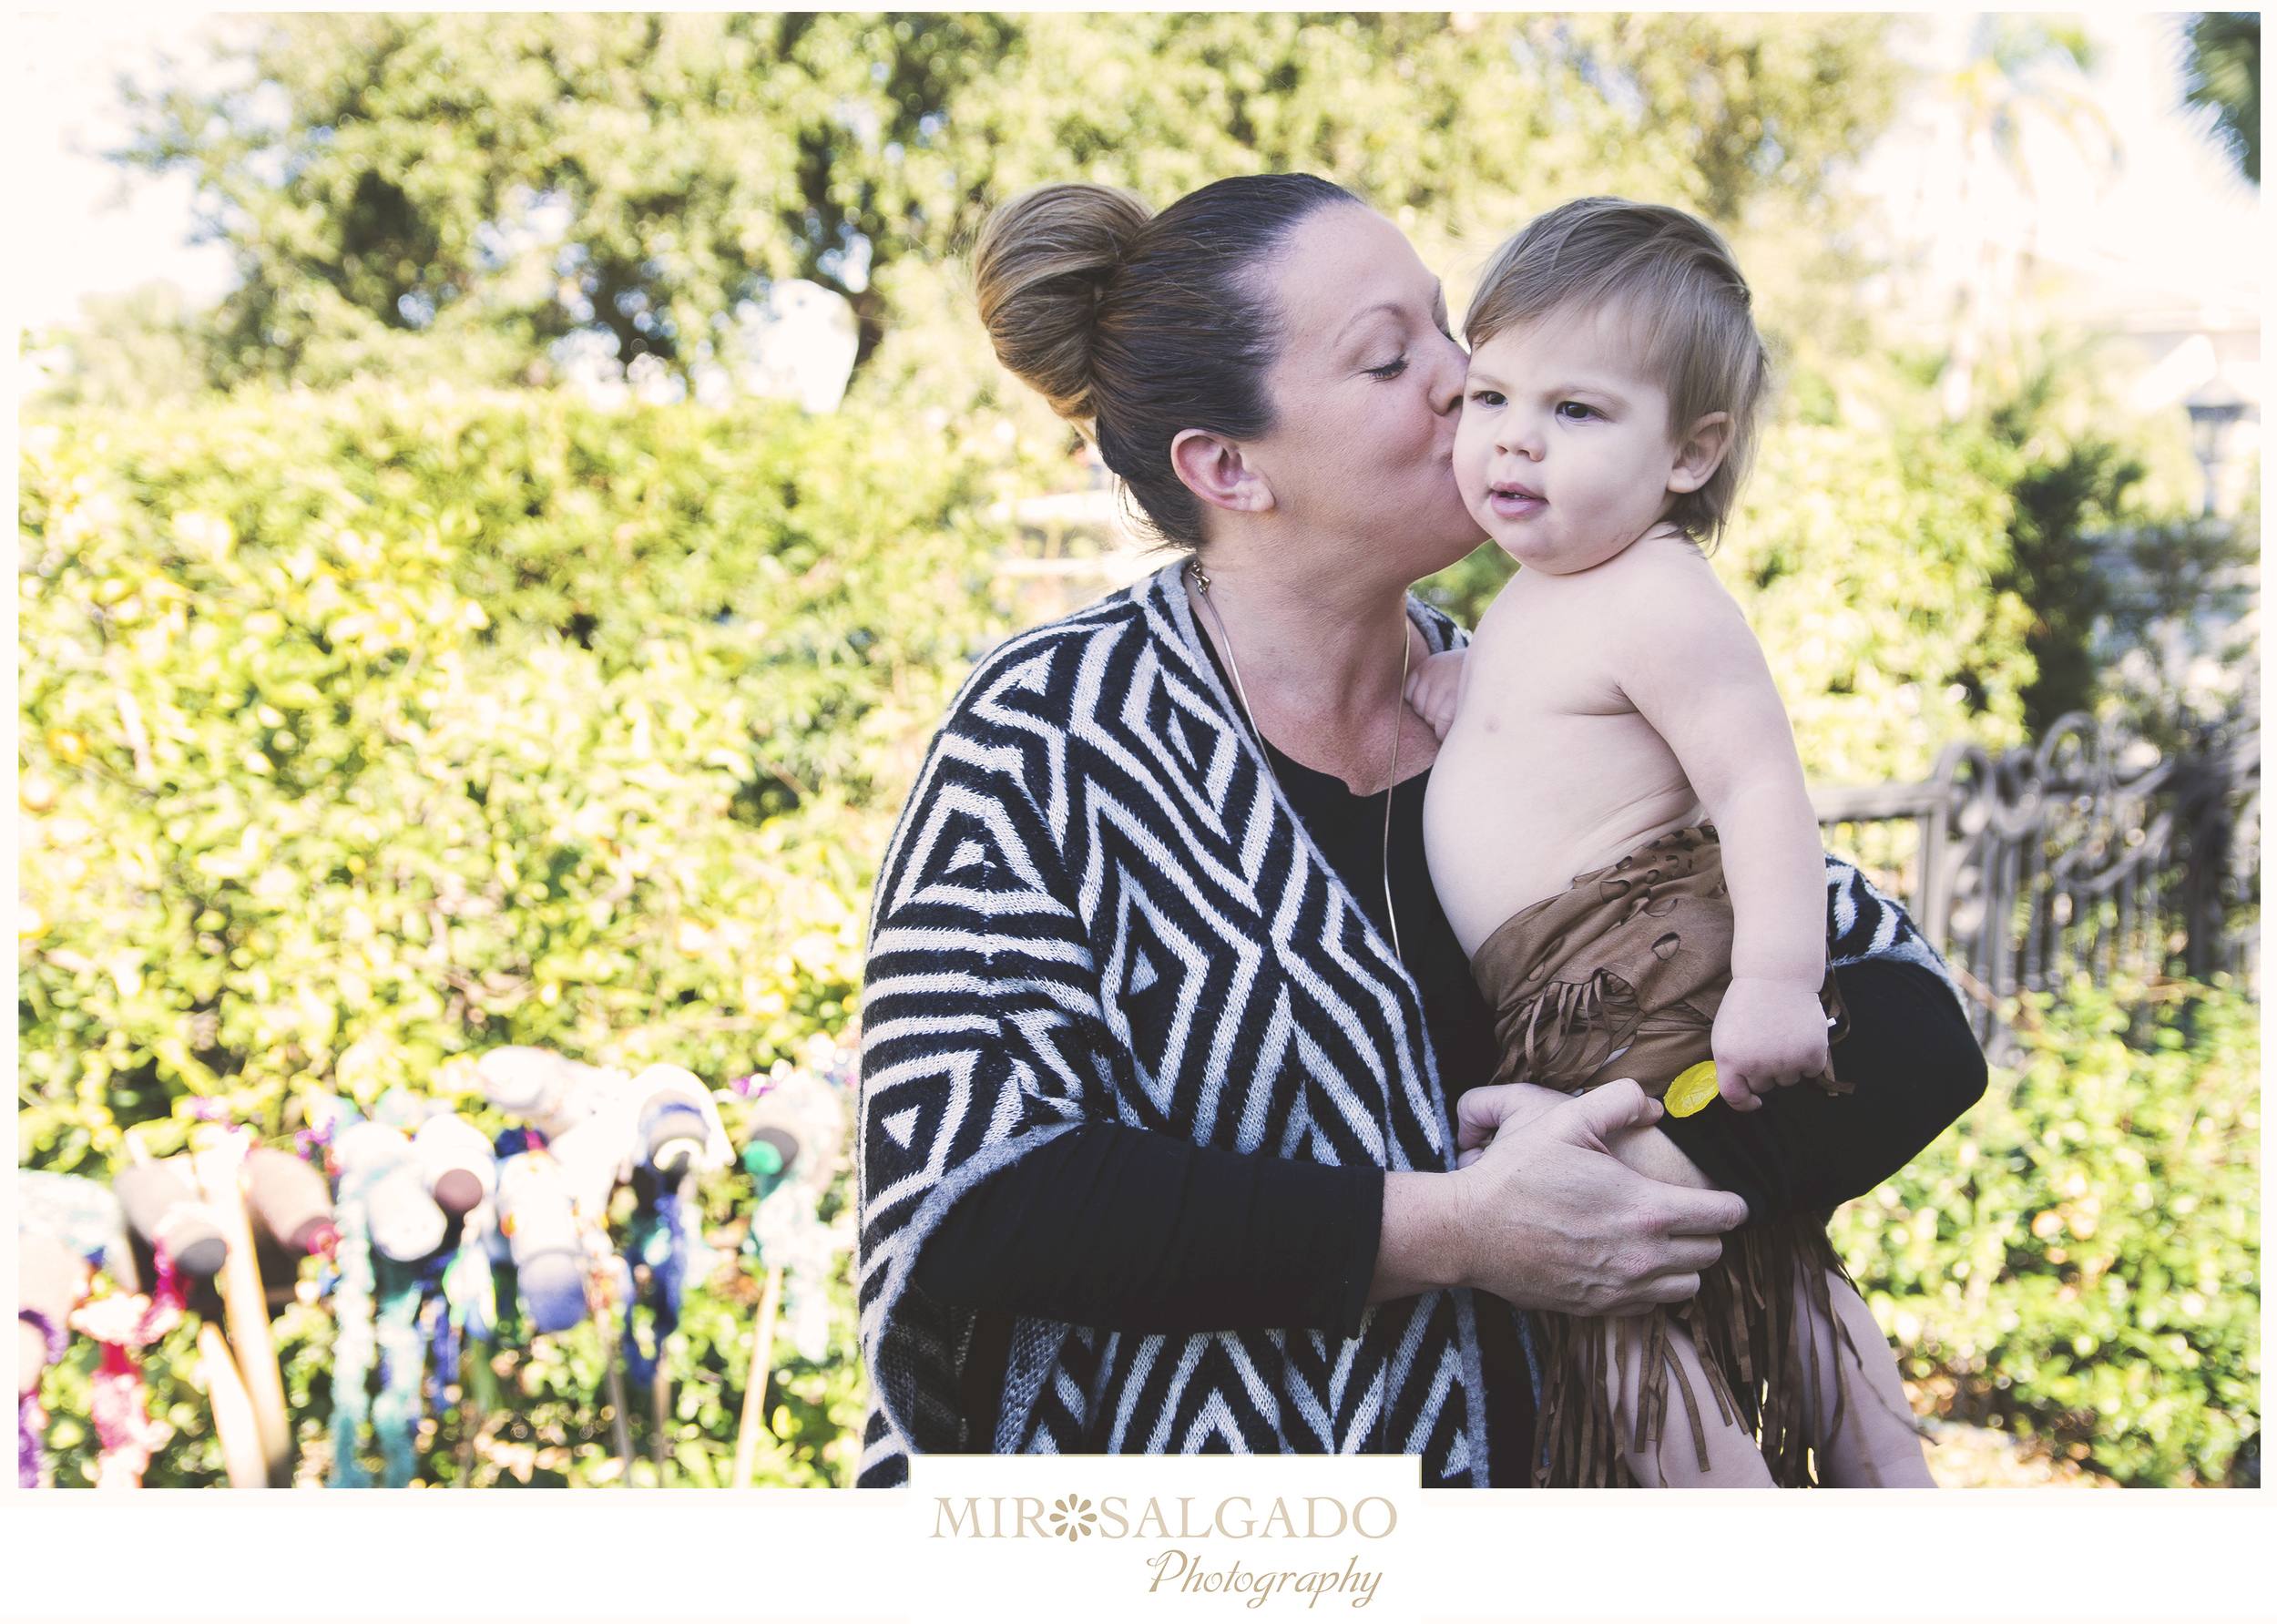 Tampa portrait photographer, happy mothers day